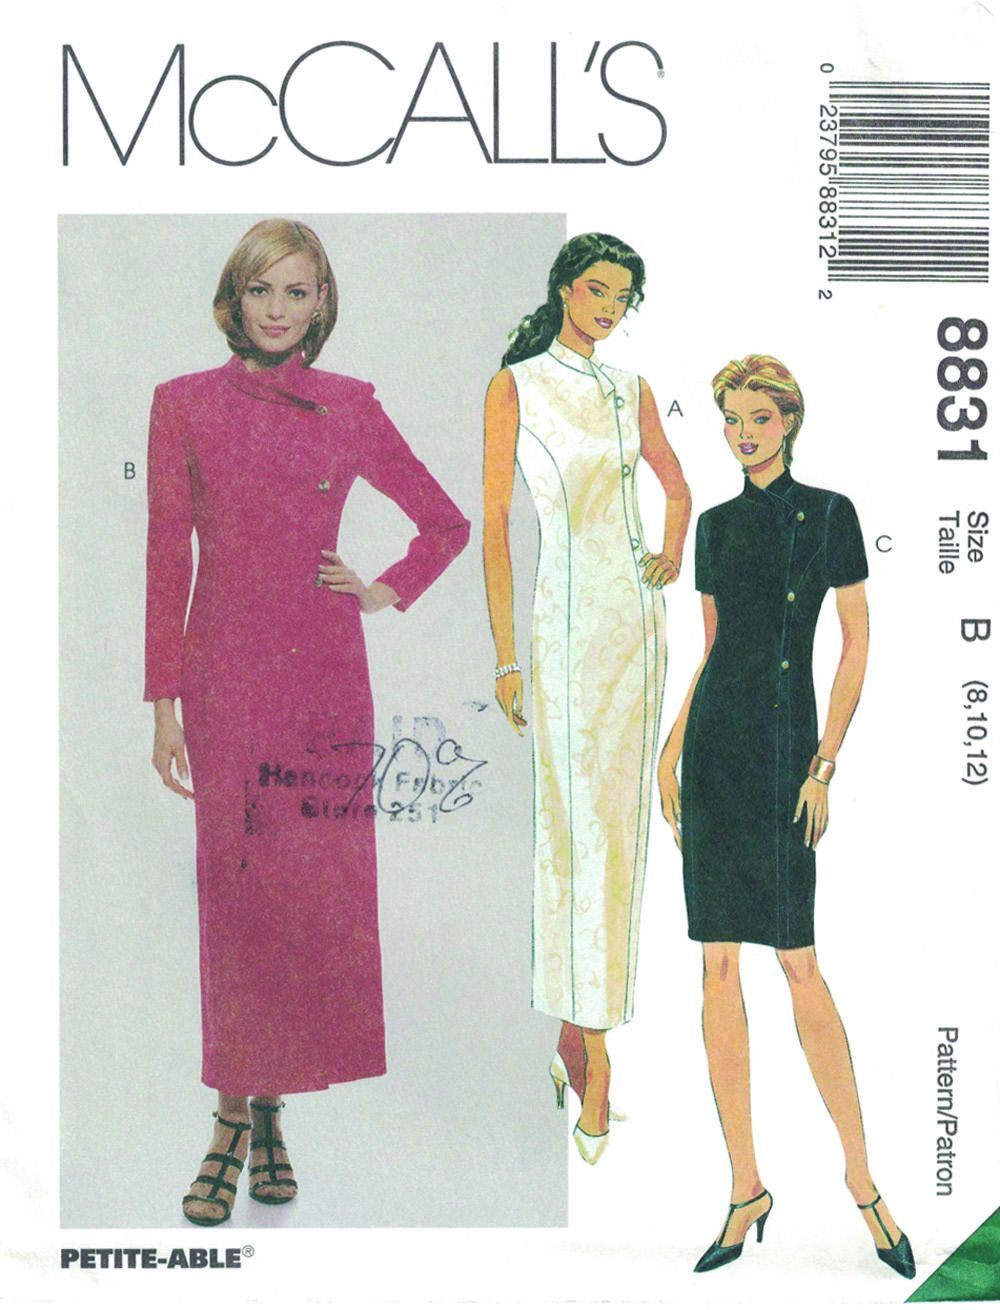 Mccalls 8831vintage sewing pattern oop uncut and complete mccalls 8831vintage sewing pattern oop uncut and complete circa 1997 jeuxipadfo Choice Image